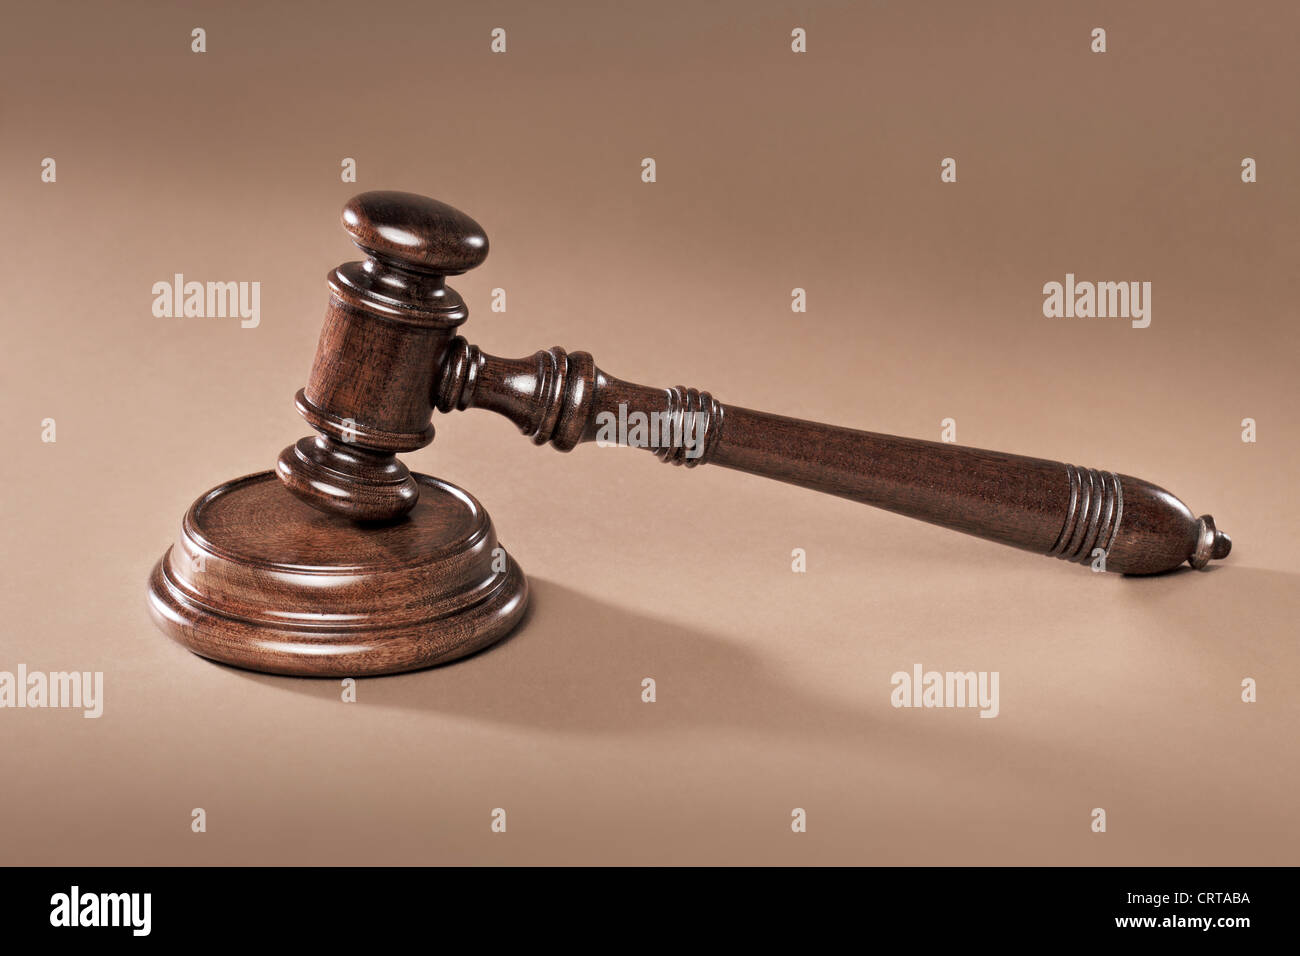 A Mahogany wooden gavel with sound block. - Stock Image